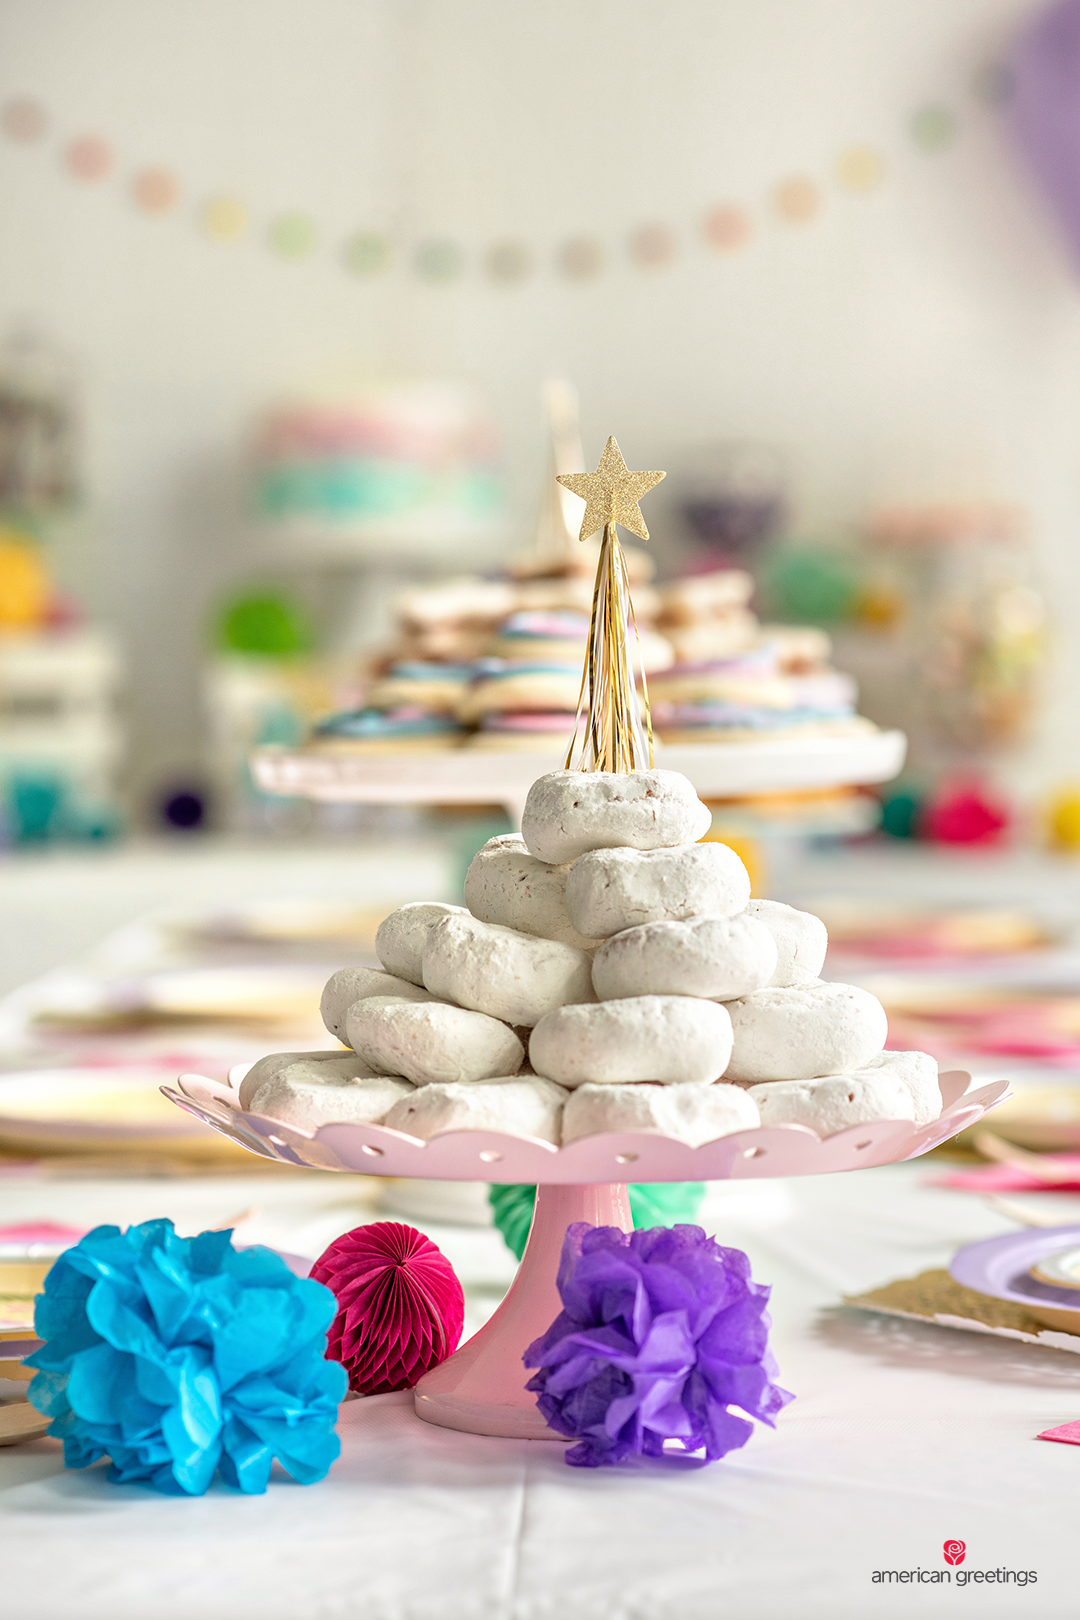 Powdered donuts on a pink plate with a blue, purple and red tissue papper pom-poms.